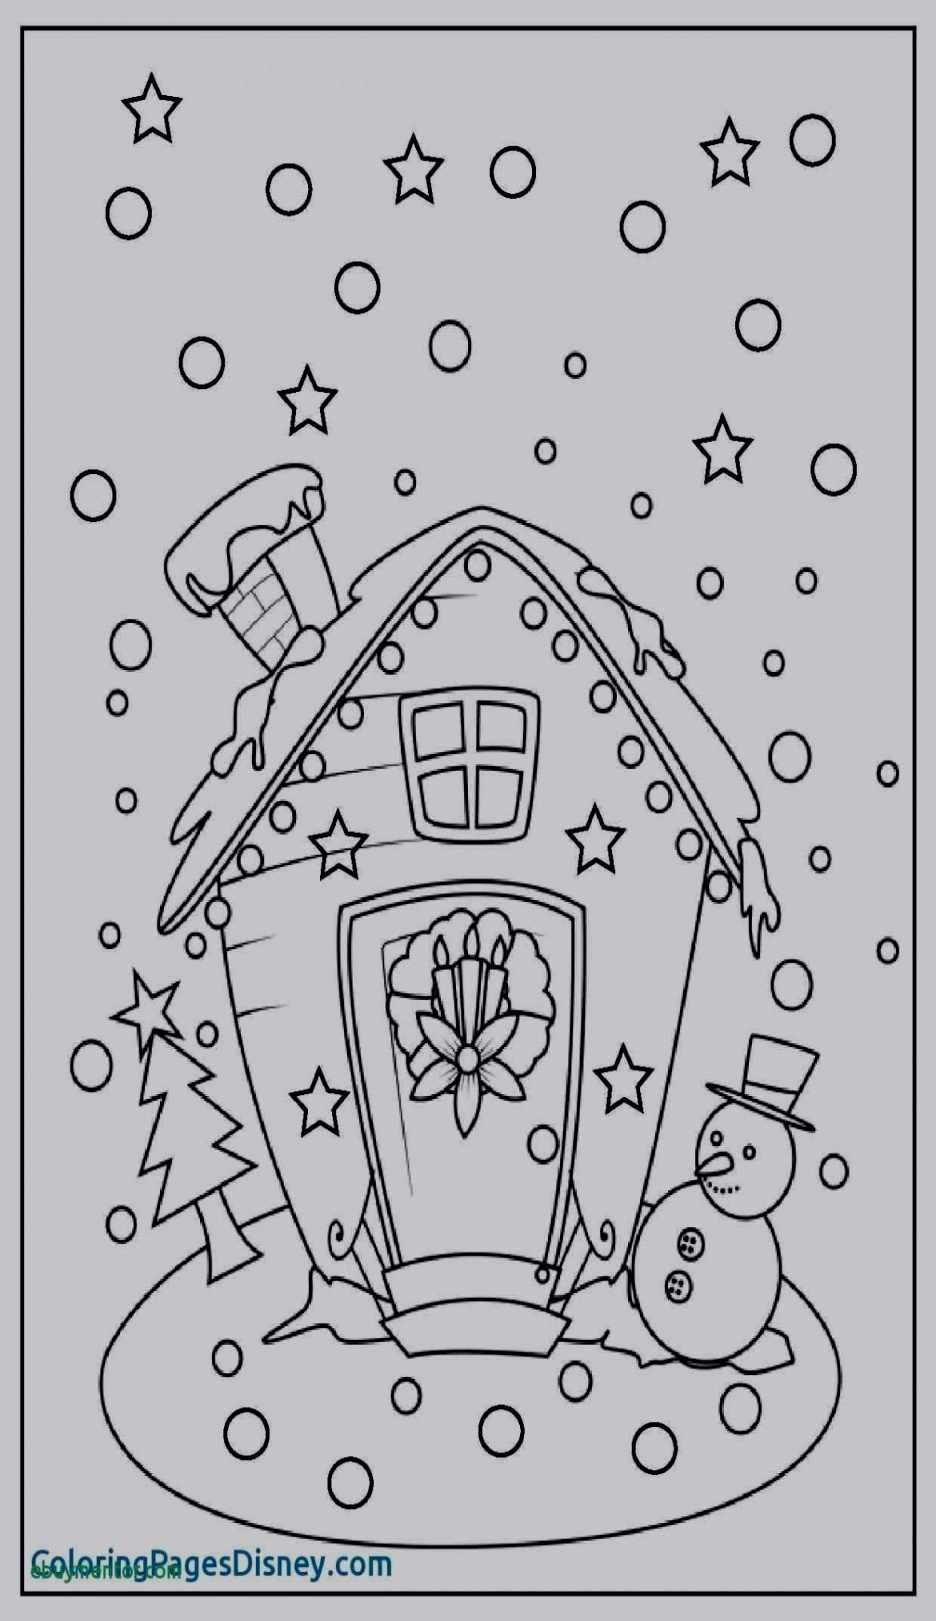 Disney Coloring Book Pdf Elegant Disney Winter Coloring Pages Kanta In 2020 Printable Christmas Coloring Pages Free Christmas Coloring Pages Christmas Coloring Sheets